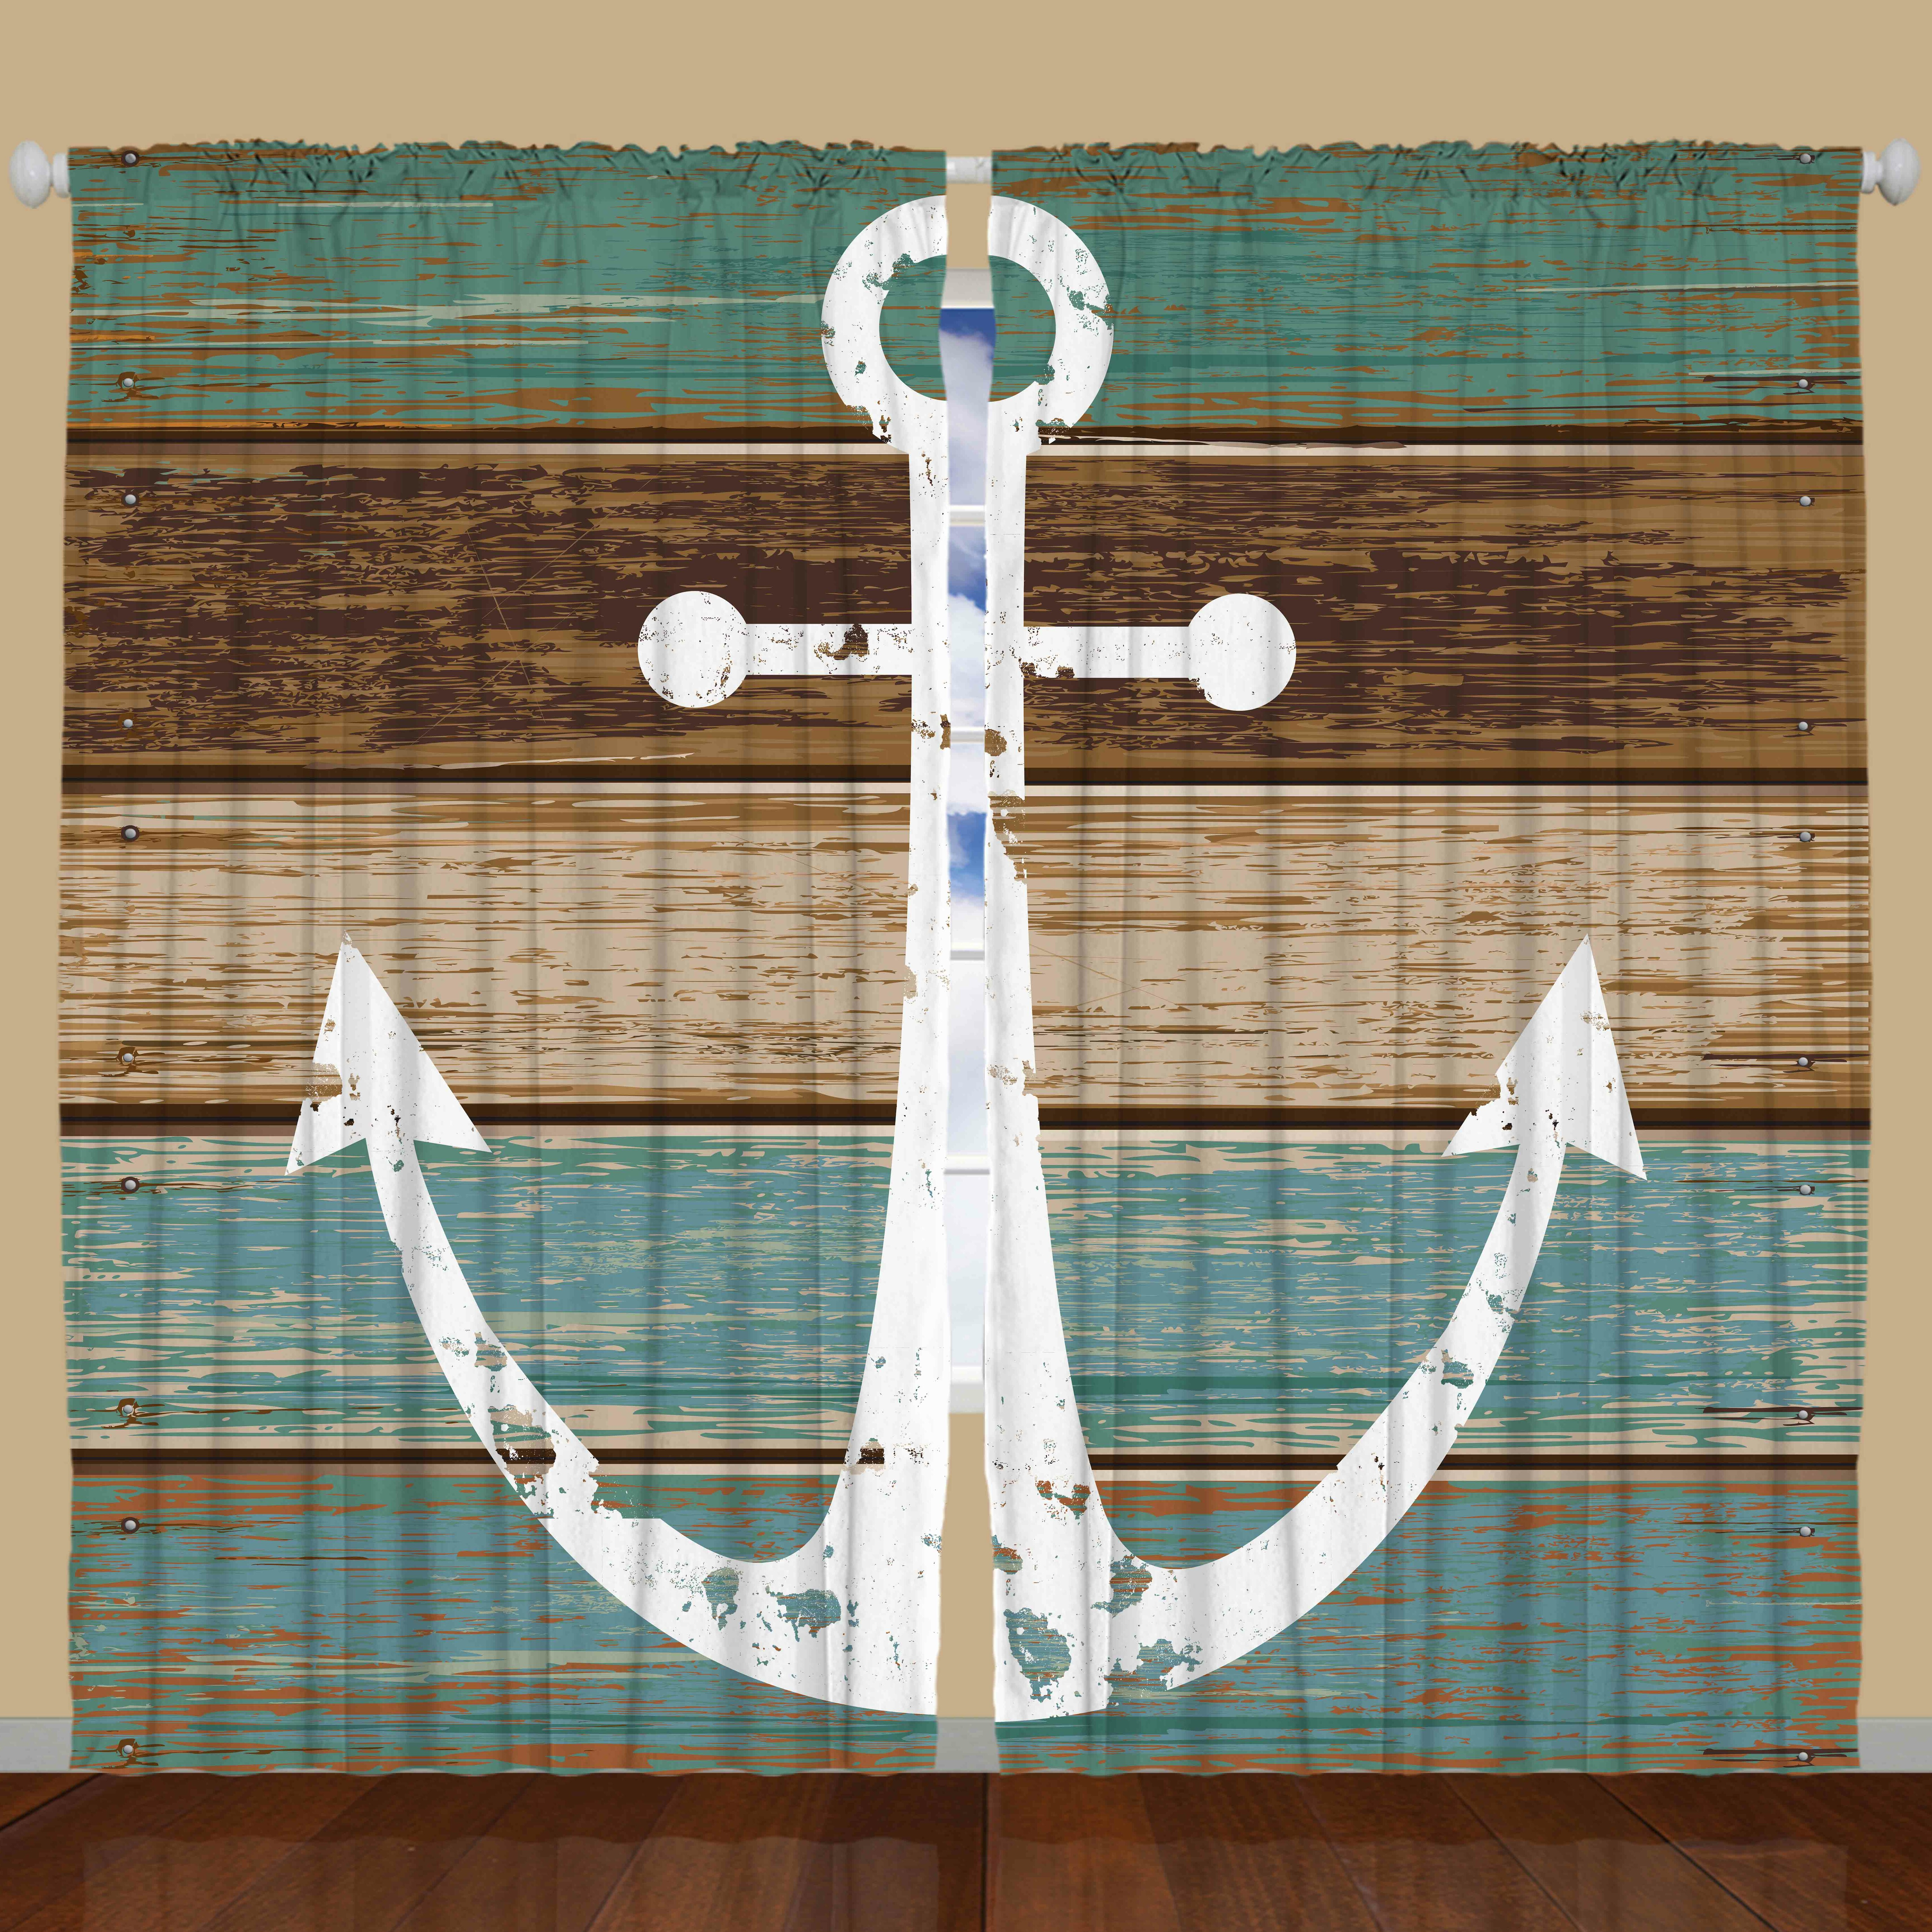 decoration long extra ideas for blackout grommet decor theme org curtain nautical with panels home sears beautiful colorful drapes nysben window s clearance curtains kmart